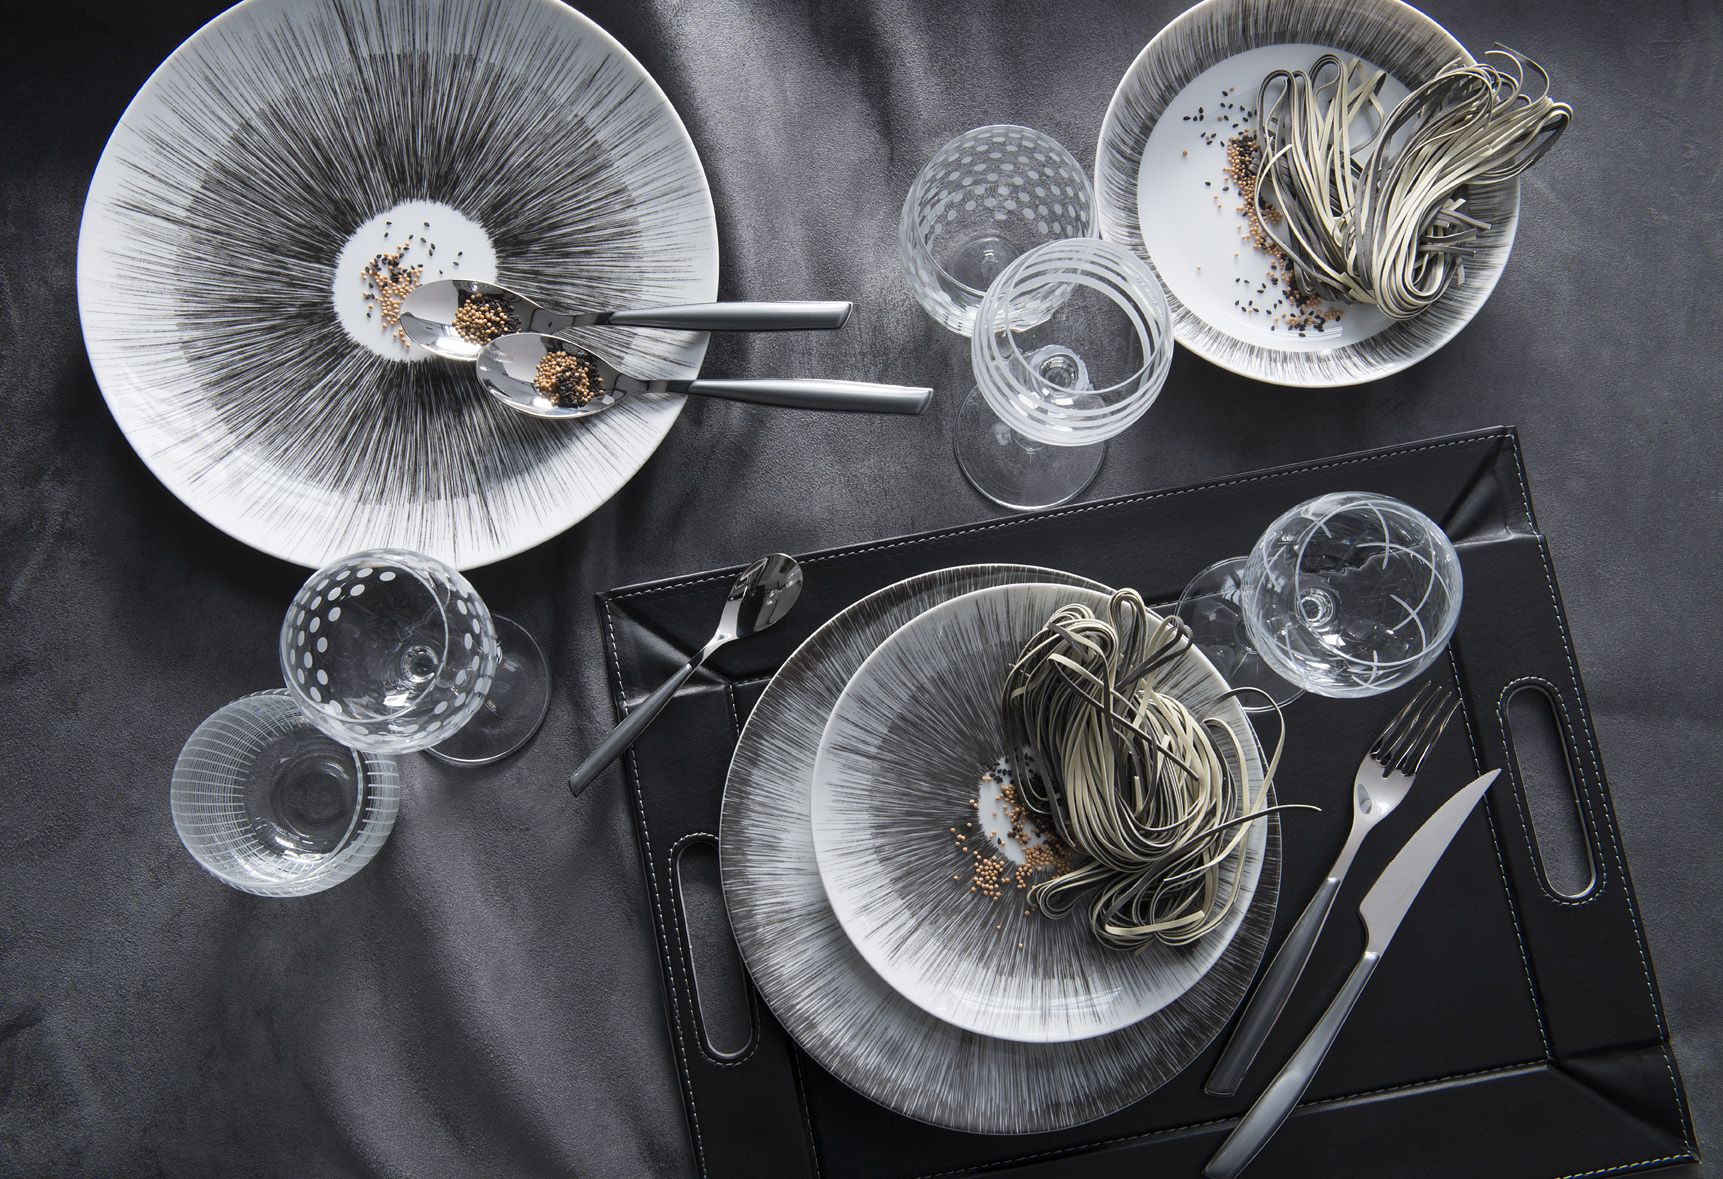 Ambiance & Styles I #ambiance #style #passiondeco #design ...